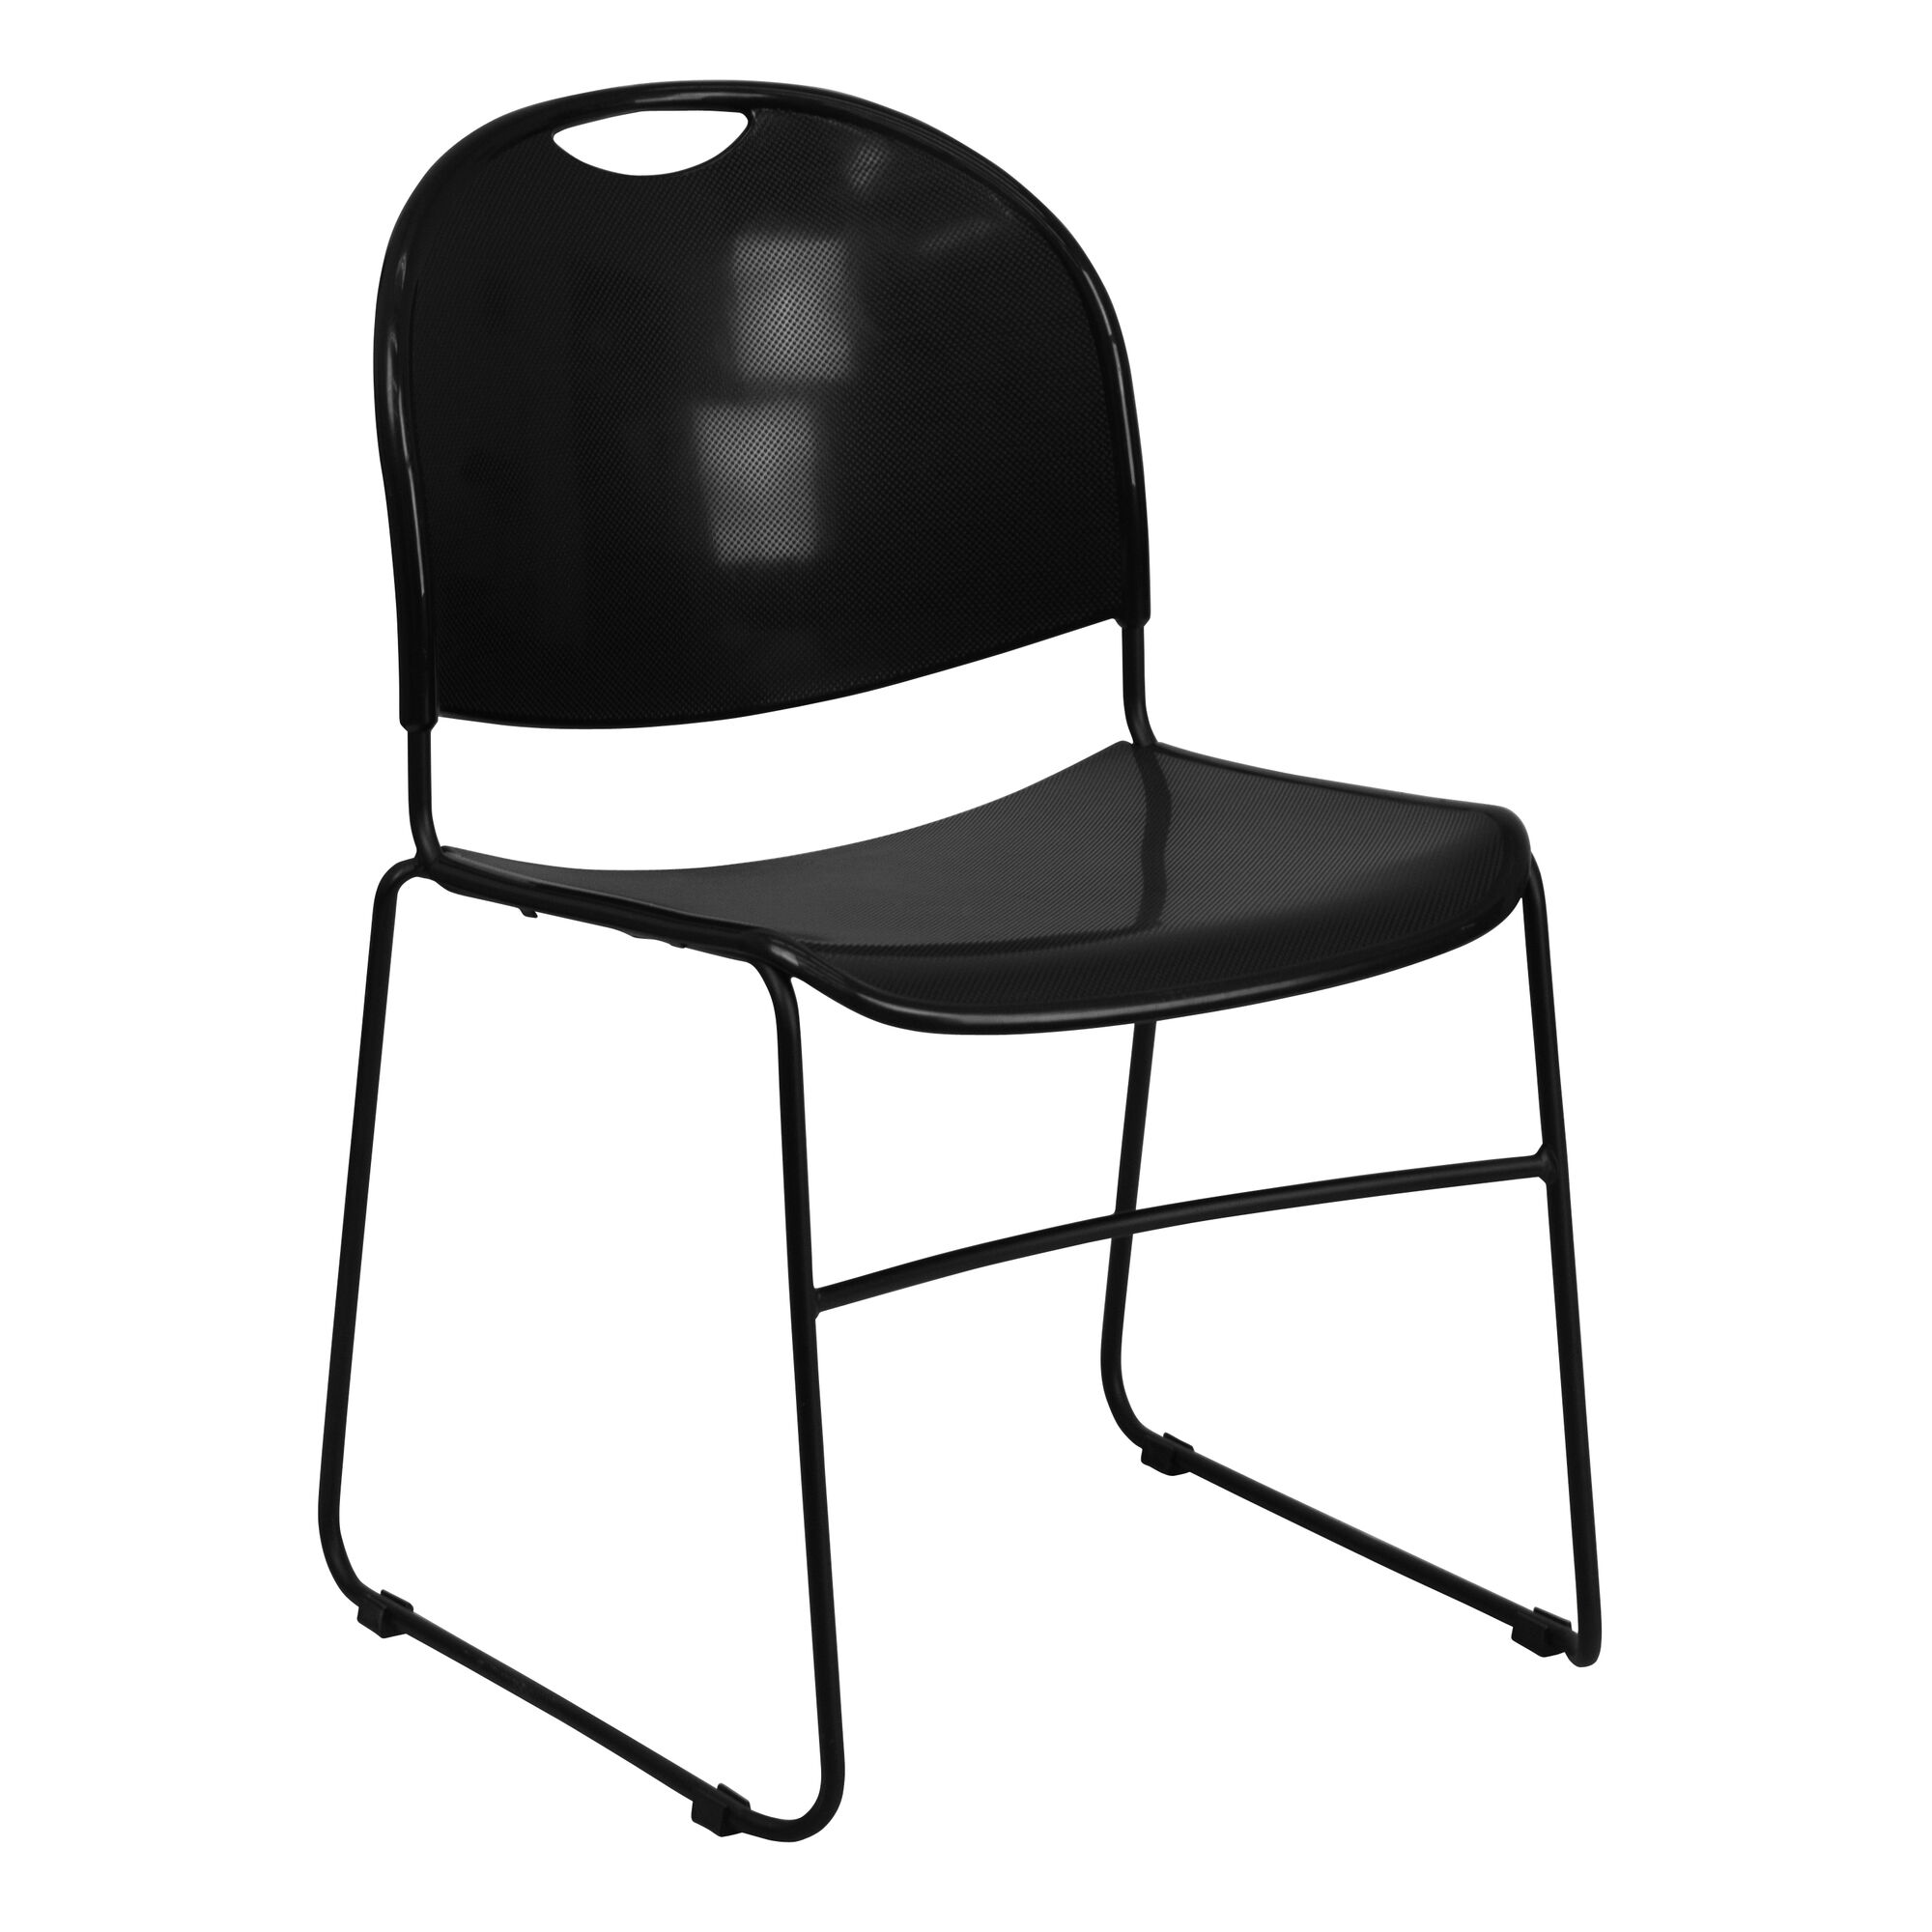 Hercules Series 880 Lb Capacity Black Ultra Compact Stack Chair With Powder Coated Frame